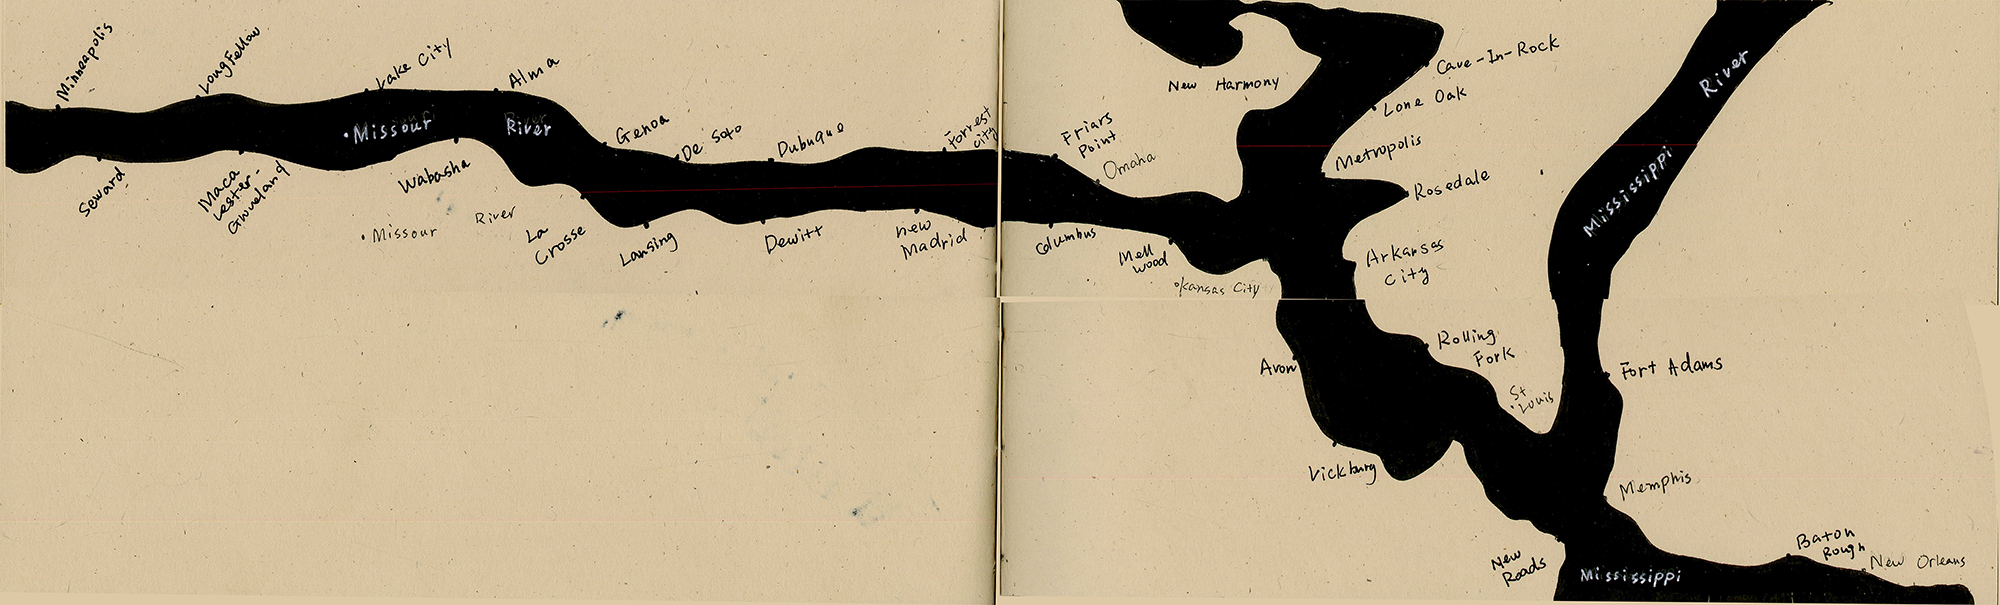 """River Book I(Top), River Book II(Bottom), """"The Five Lakes"""" of the United States and China"""